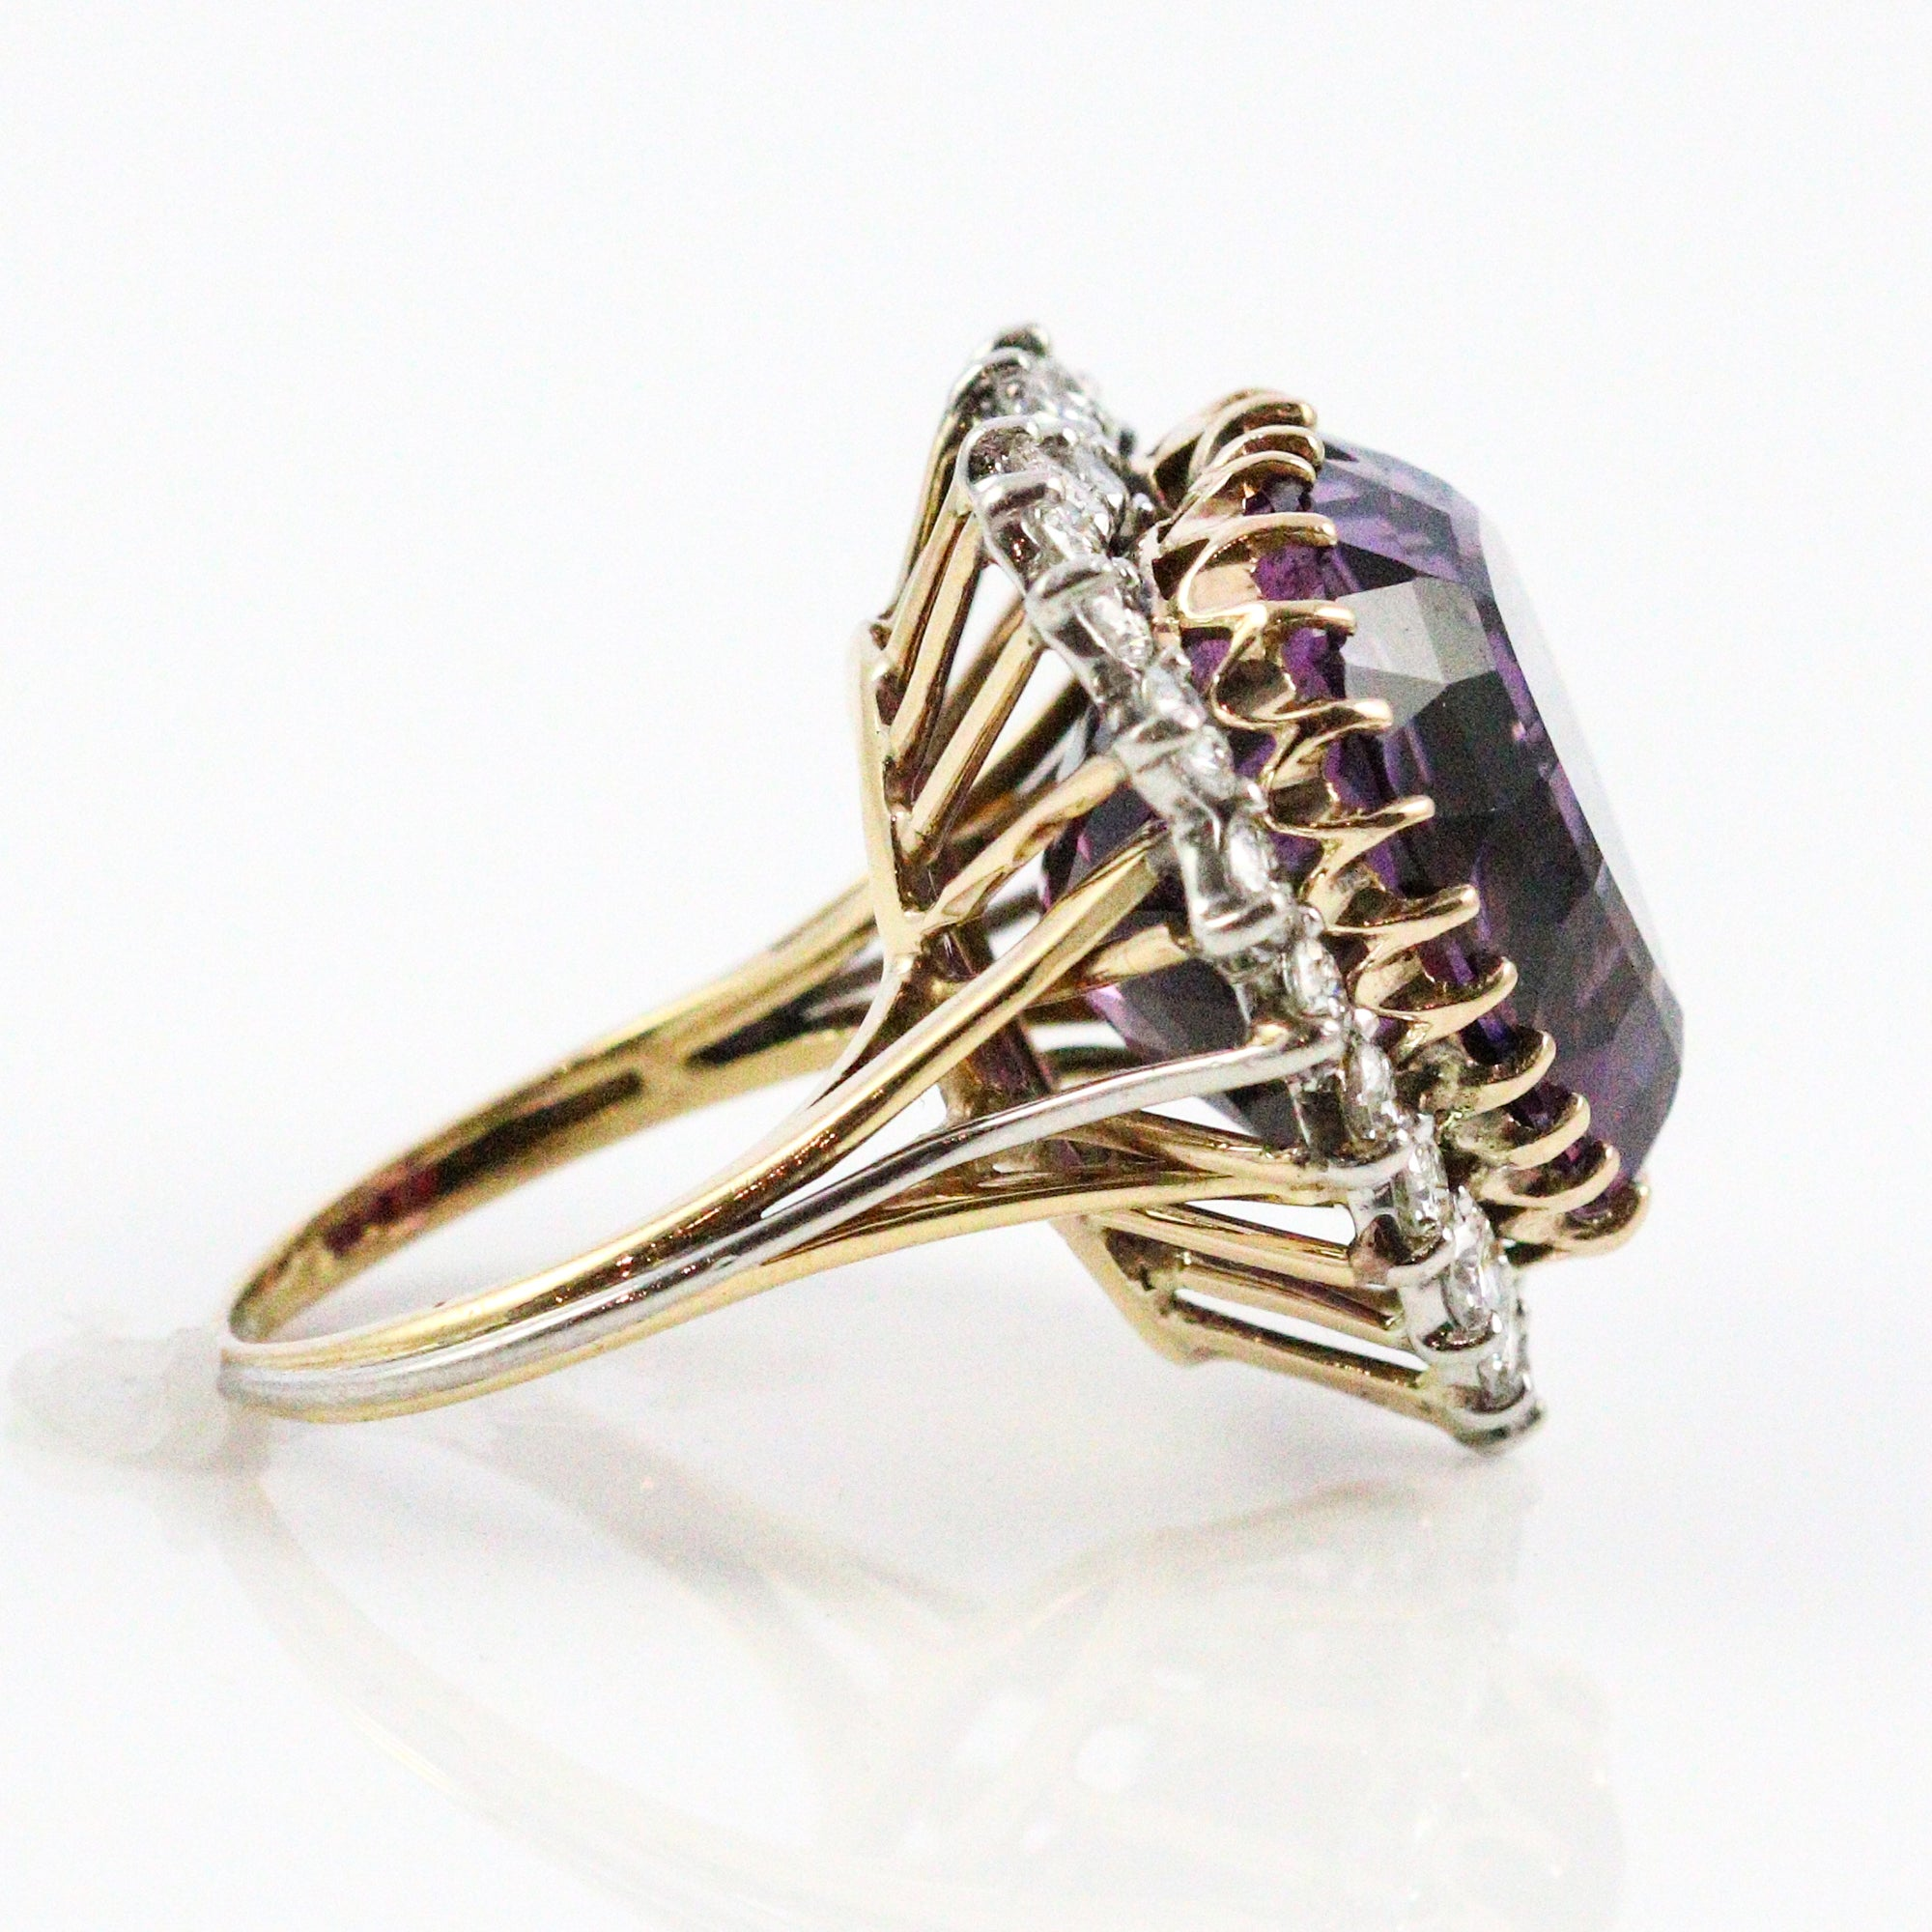 rings purple amethist set previous sapphire next engagement kyklos untitled shop ring jewelry en